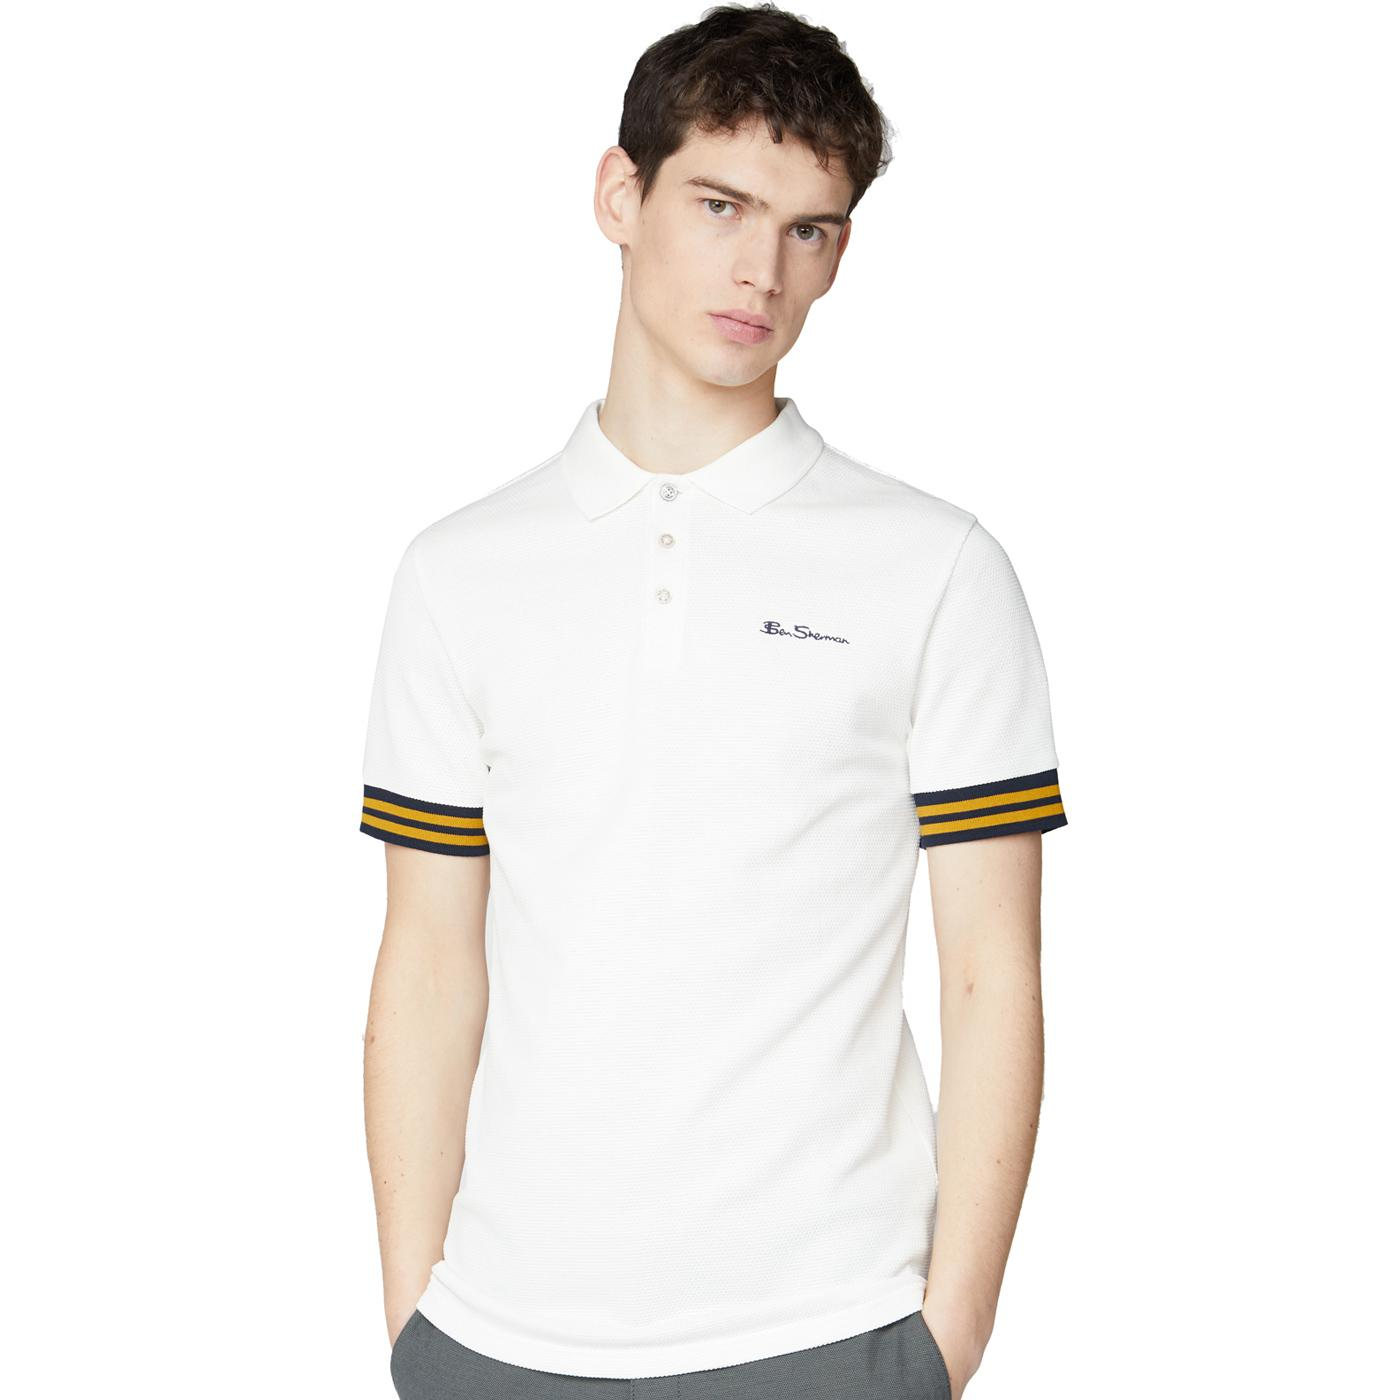 BEN SHERMAN Textured Pineapple Pique Polo Top (SW)